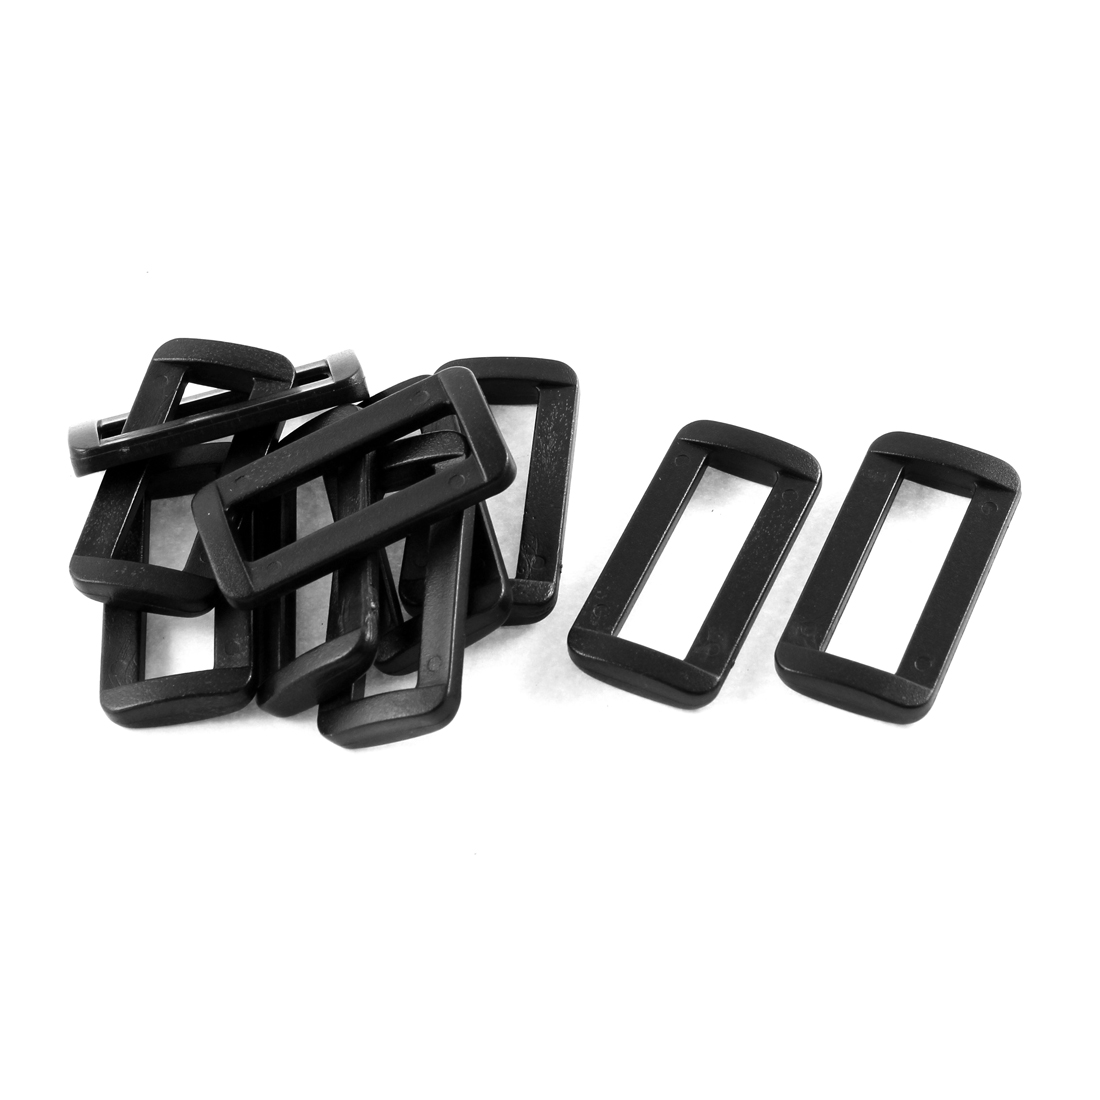 10pcs Black Plastic Bar Slides Buckles for 32mm Webbing Strap